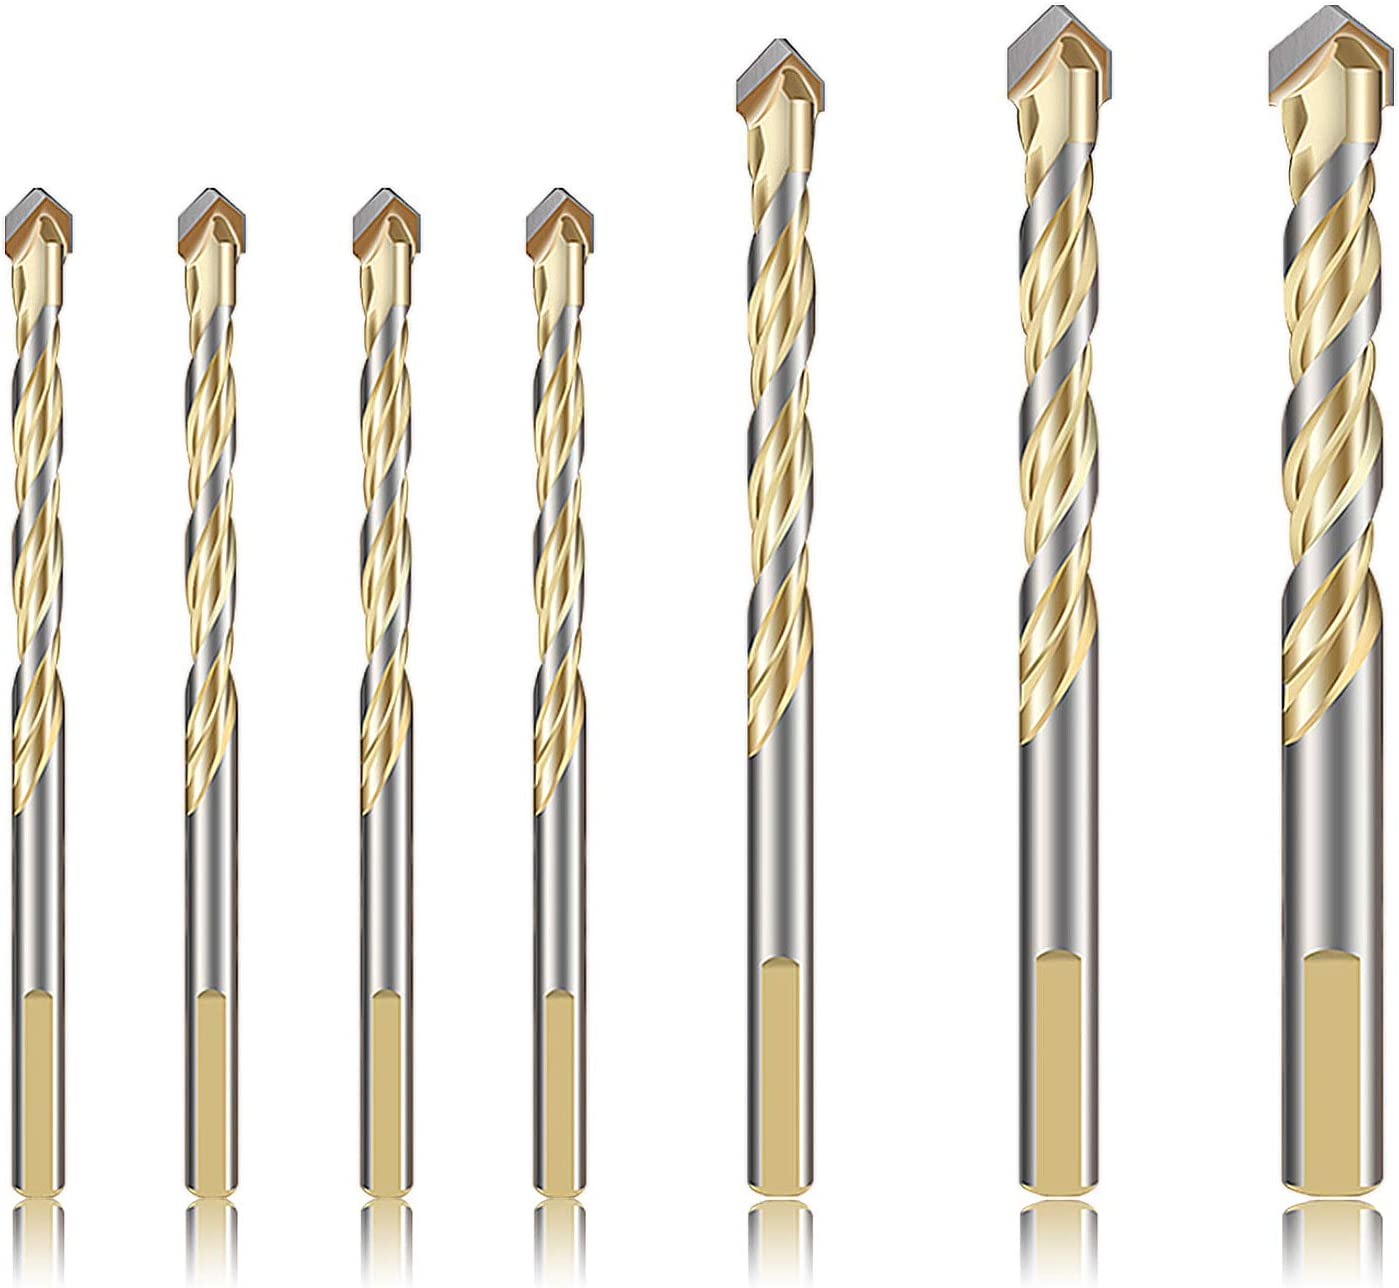 Amazon Com 7 Piece Masonry Drill Bits For Concrete Plastic Soft Metal Tile Glass Wood Yuerseak Tungsten Carbide Tip For Wall Mirror Ceramic Brick Wall With Sizes In 1 4 5 16 3 8 1 2 Inch Yg8